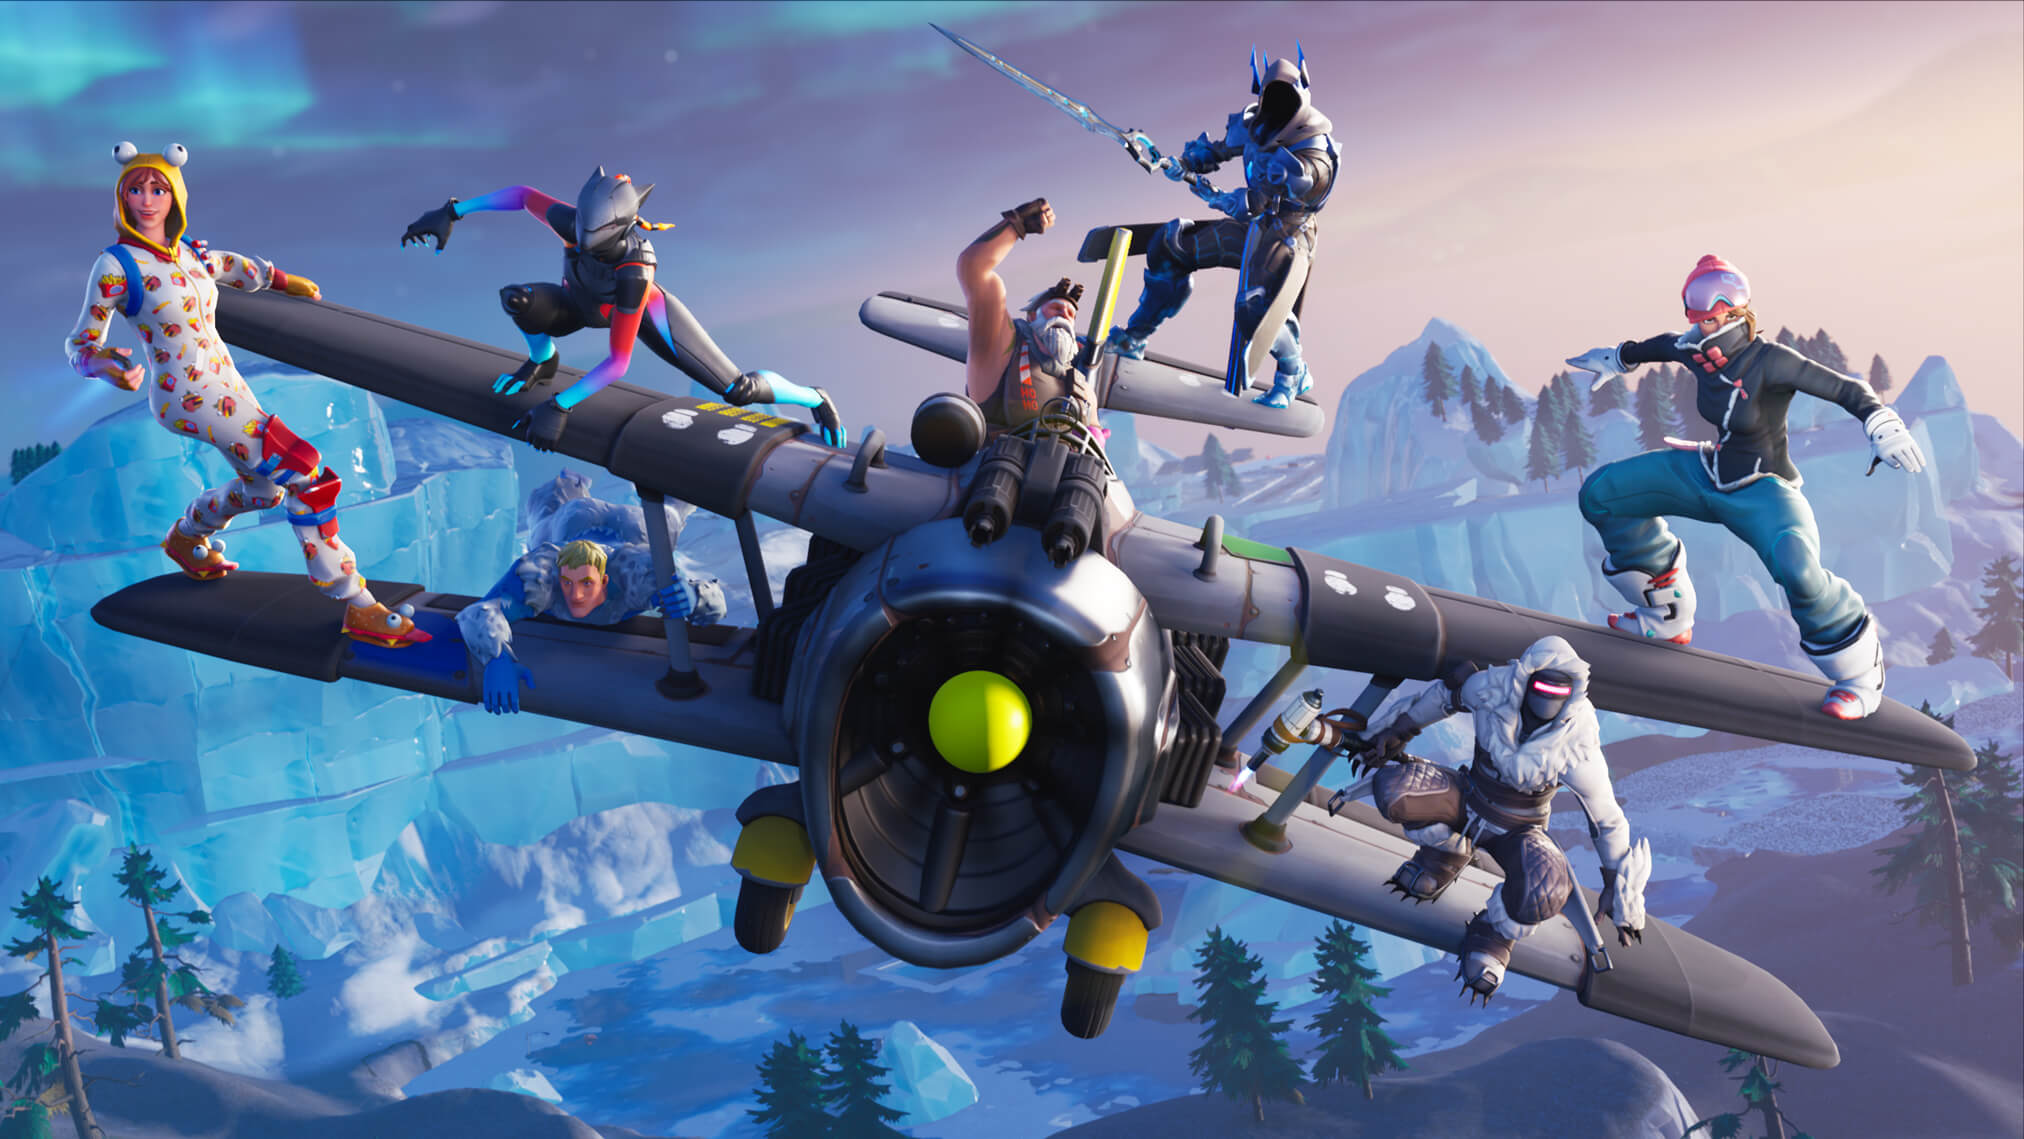 Fortnite: How to Get Stretched Resolution on PC & Consoles